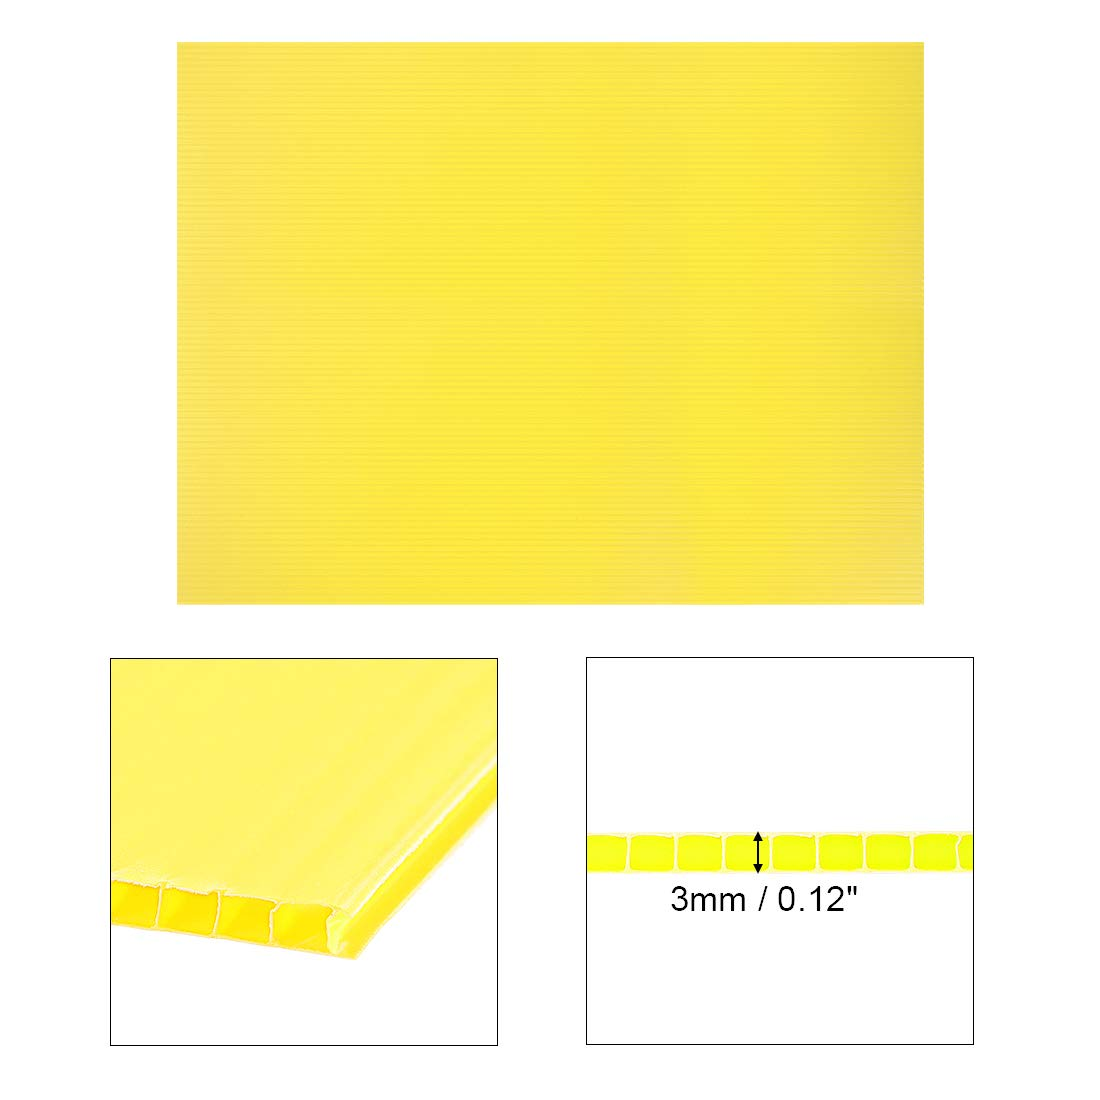 uxcell Corrugated Plastic Sheets,3mm Yellow Blank Yard Lawn Signs,12 Inch x 16 Inch,Waterproof Sign Blank Board 1pcs